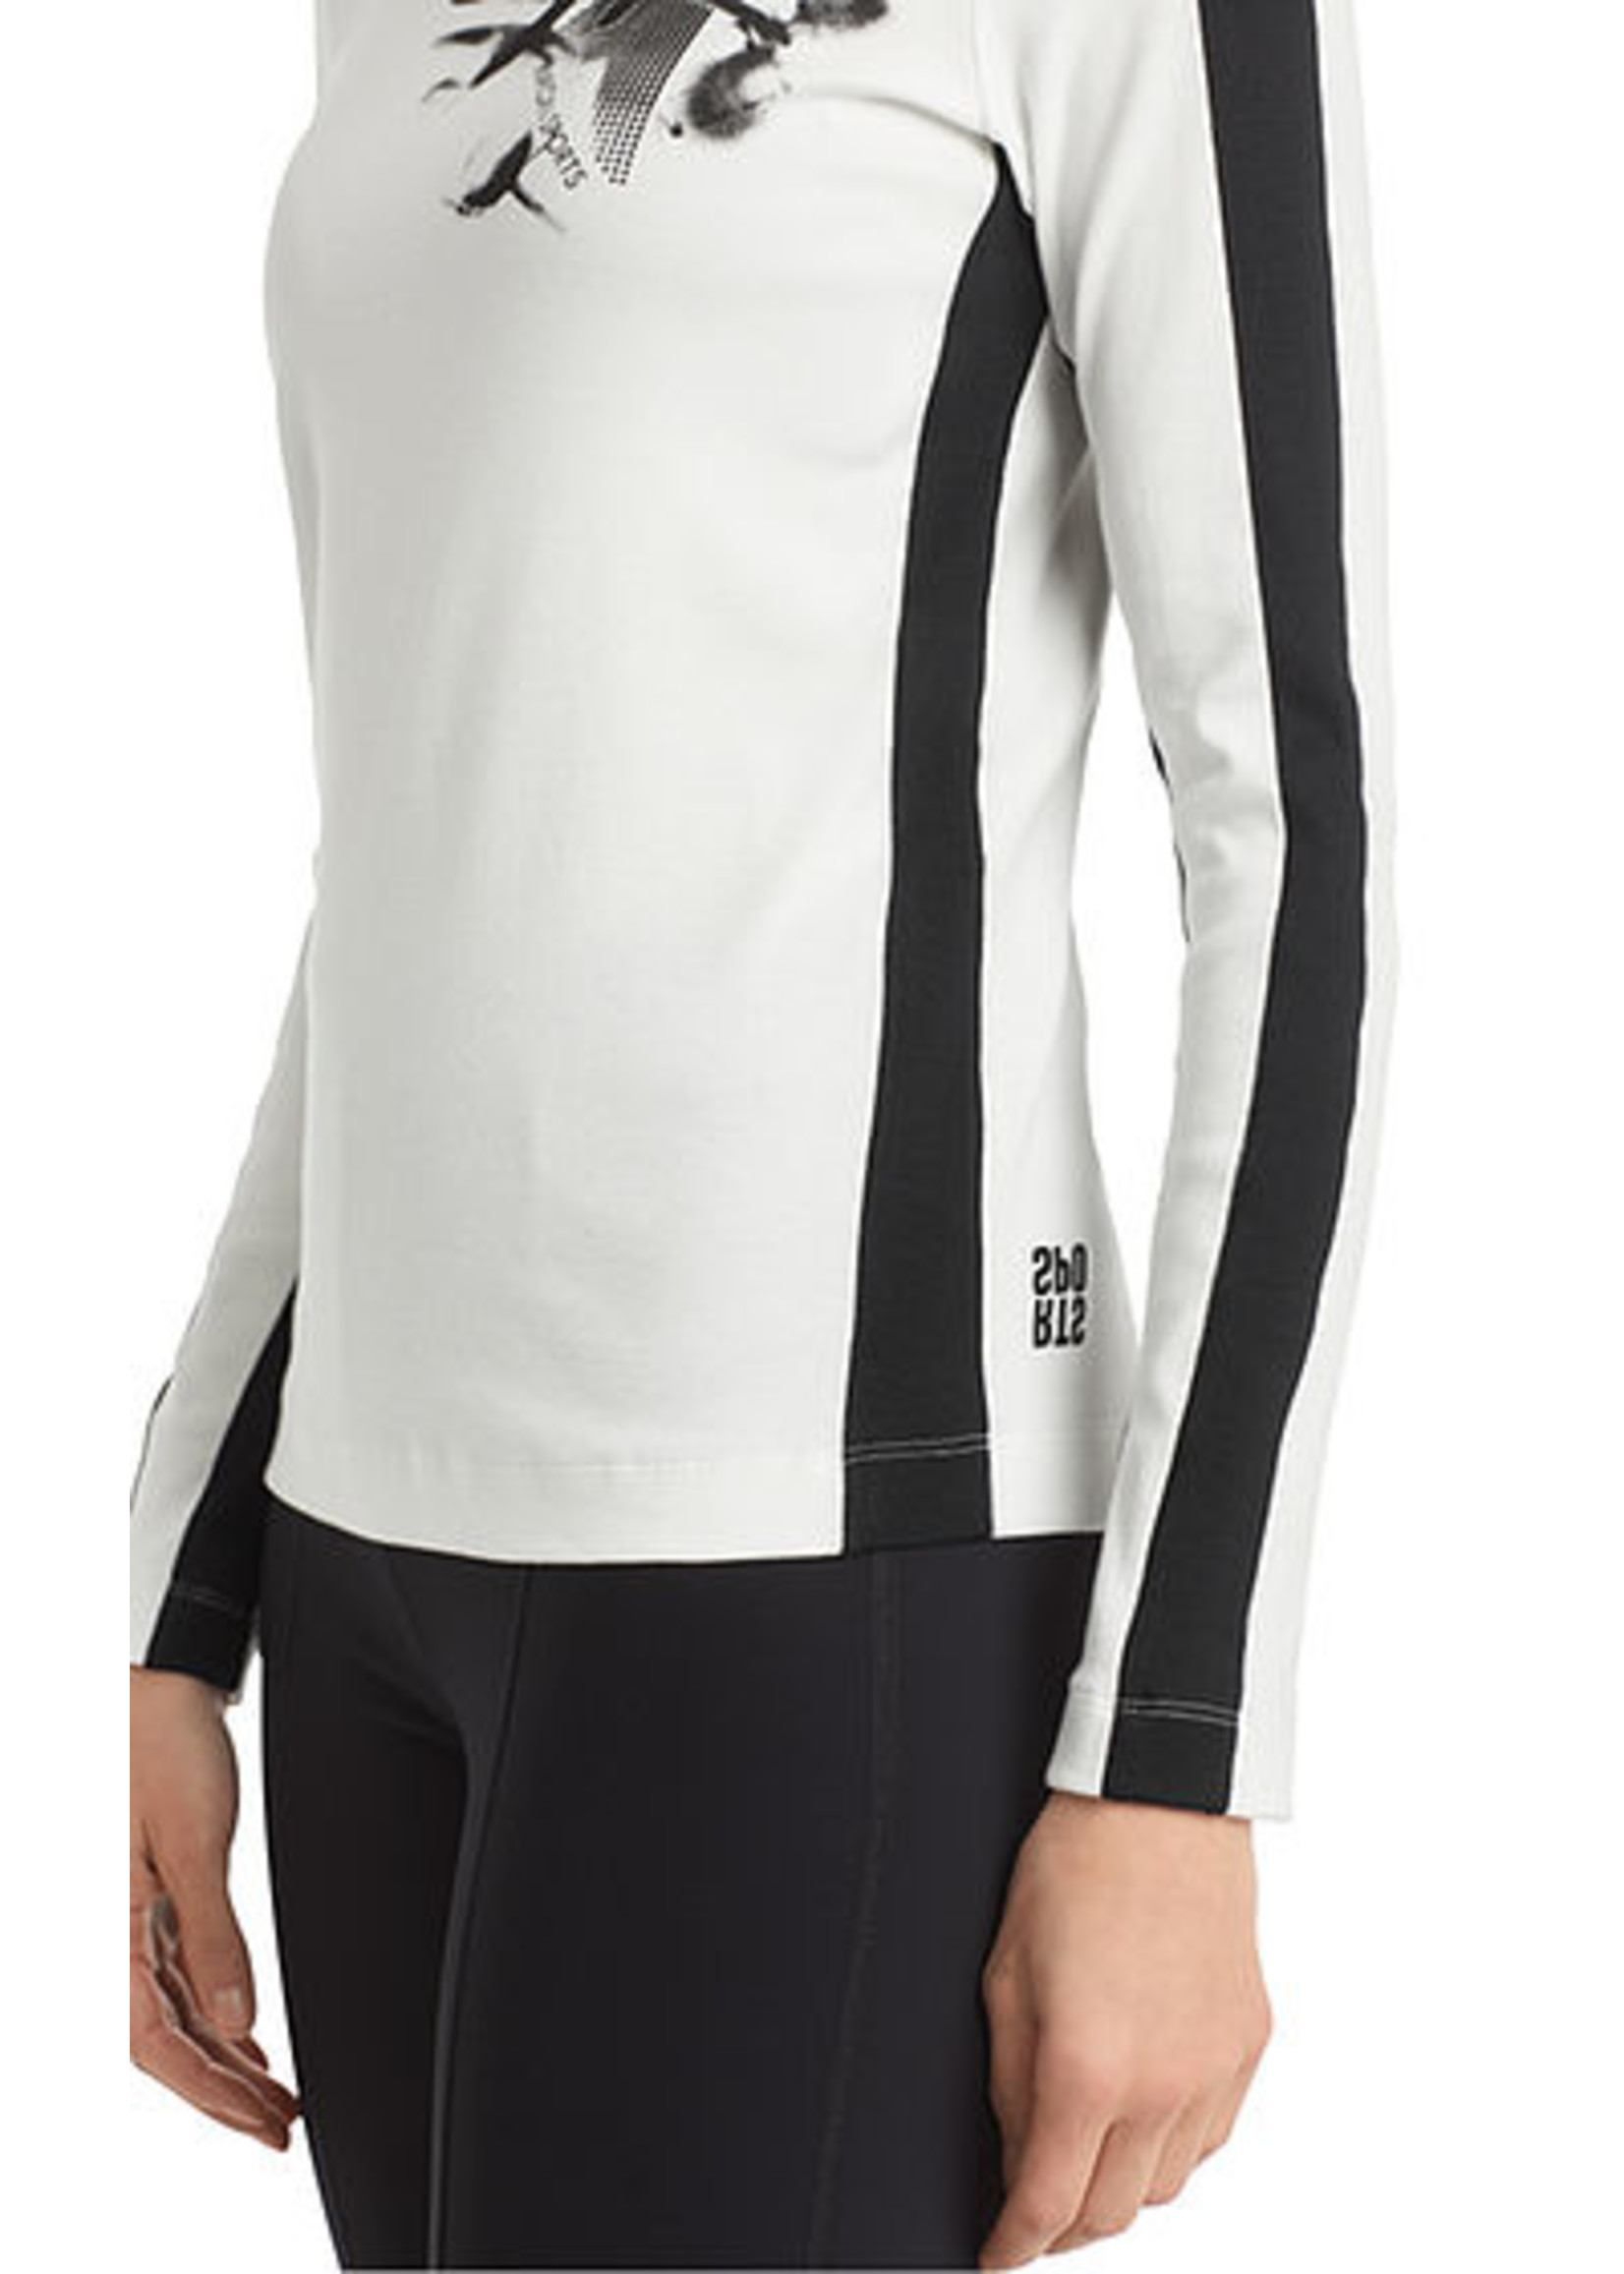 Marccain Sports T-shirt RS 48.57 J33 white and black